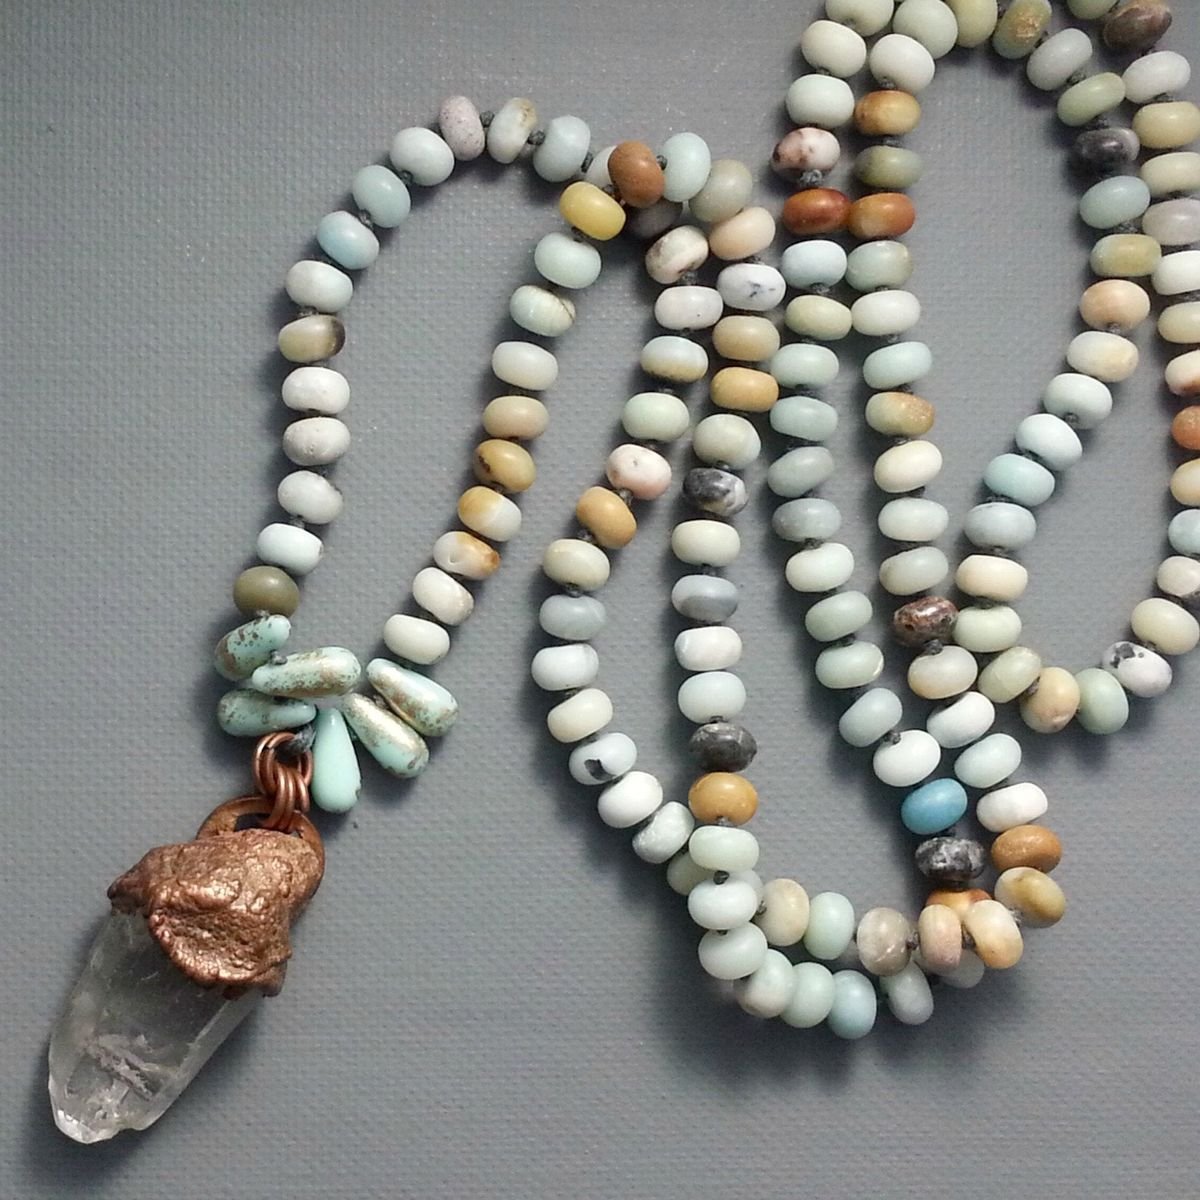 Solid Copper Electroformed Crystal Point on Cord with Amazonite Stones and Glass Beads - product image